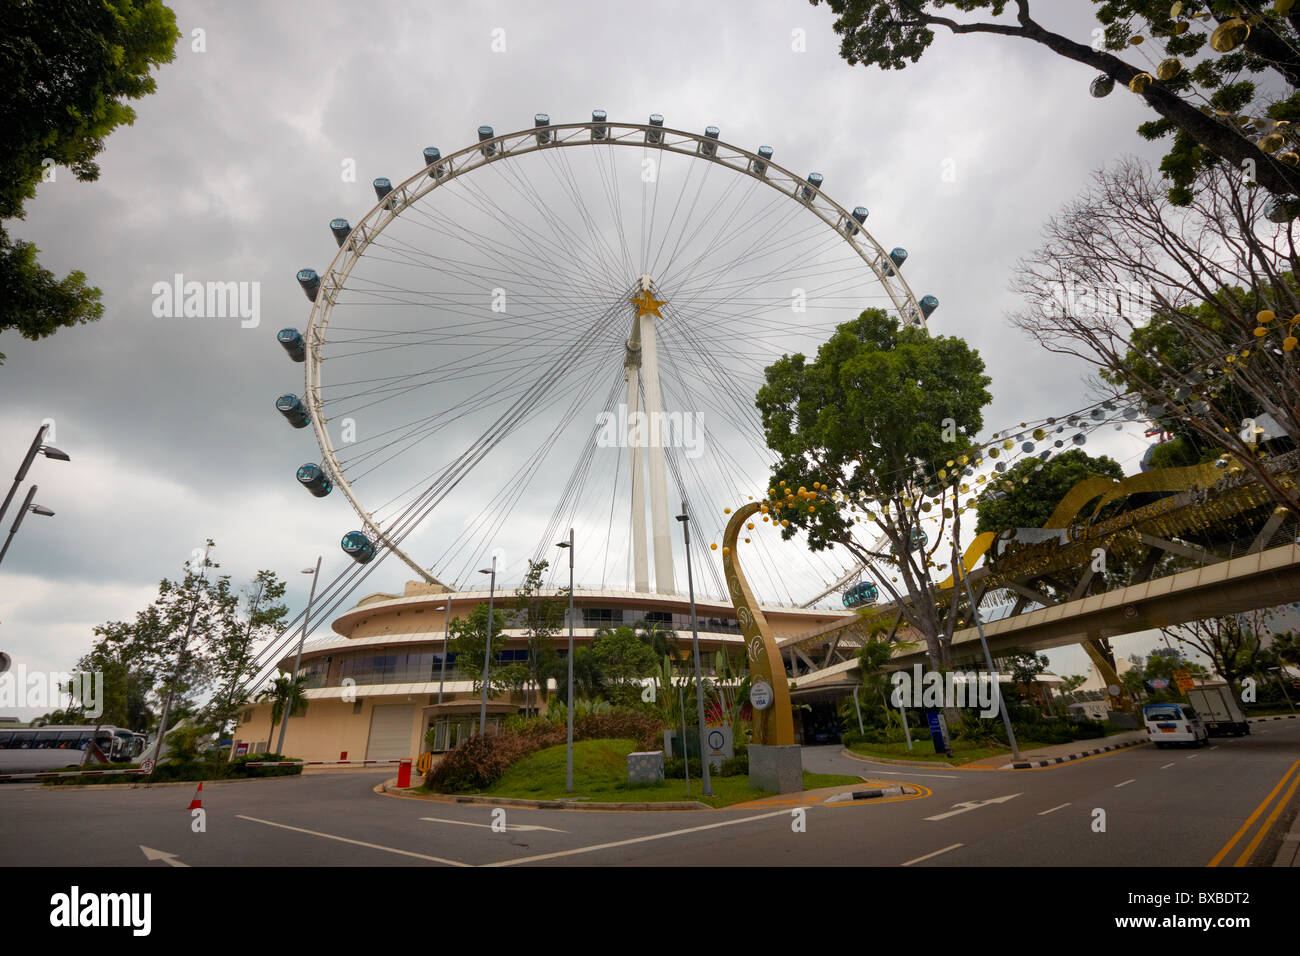 Singapore flyer, Singapore, Asia - Stock Image